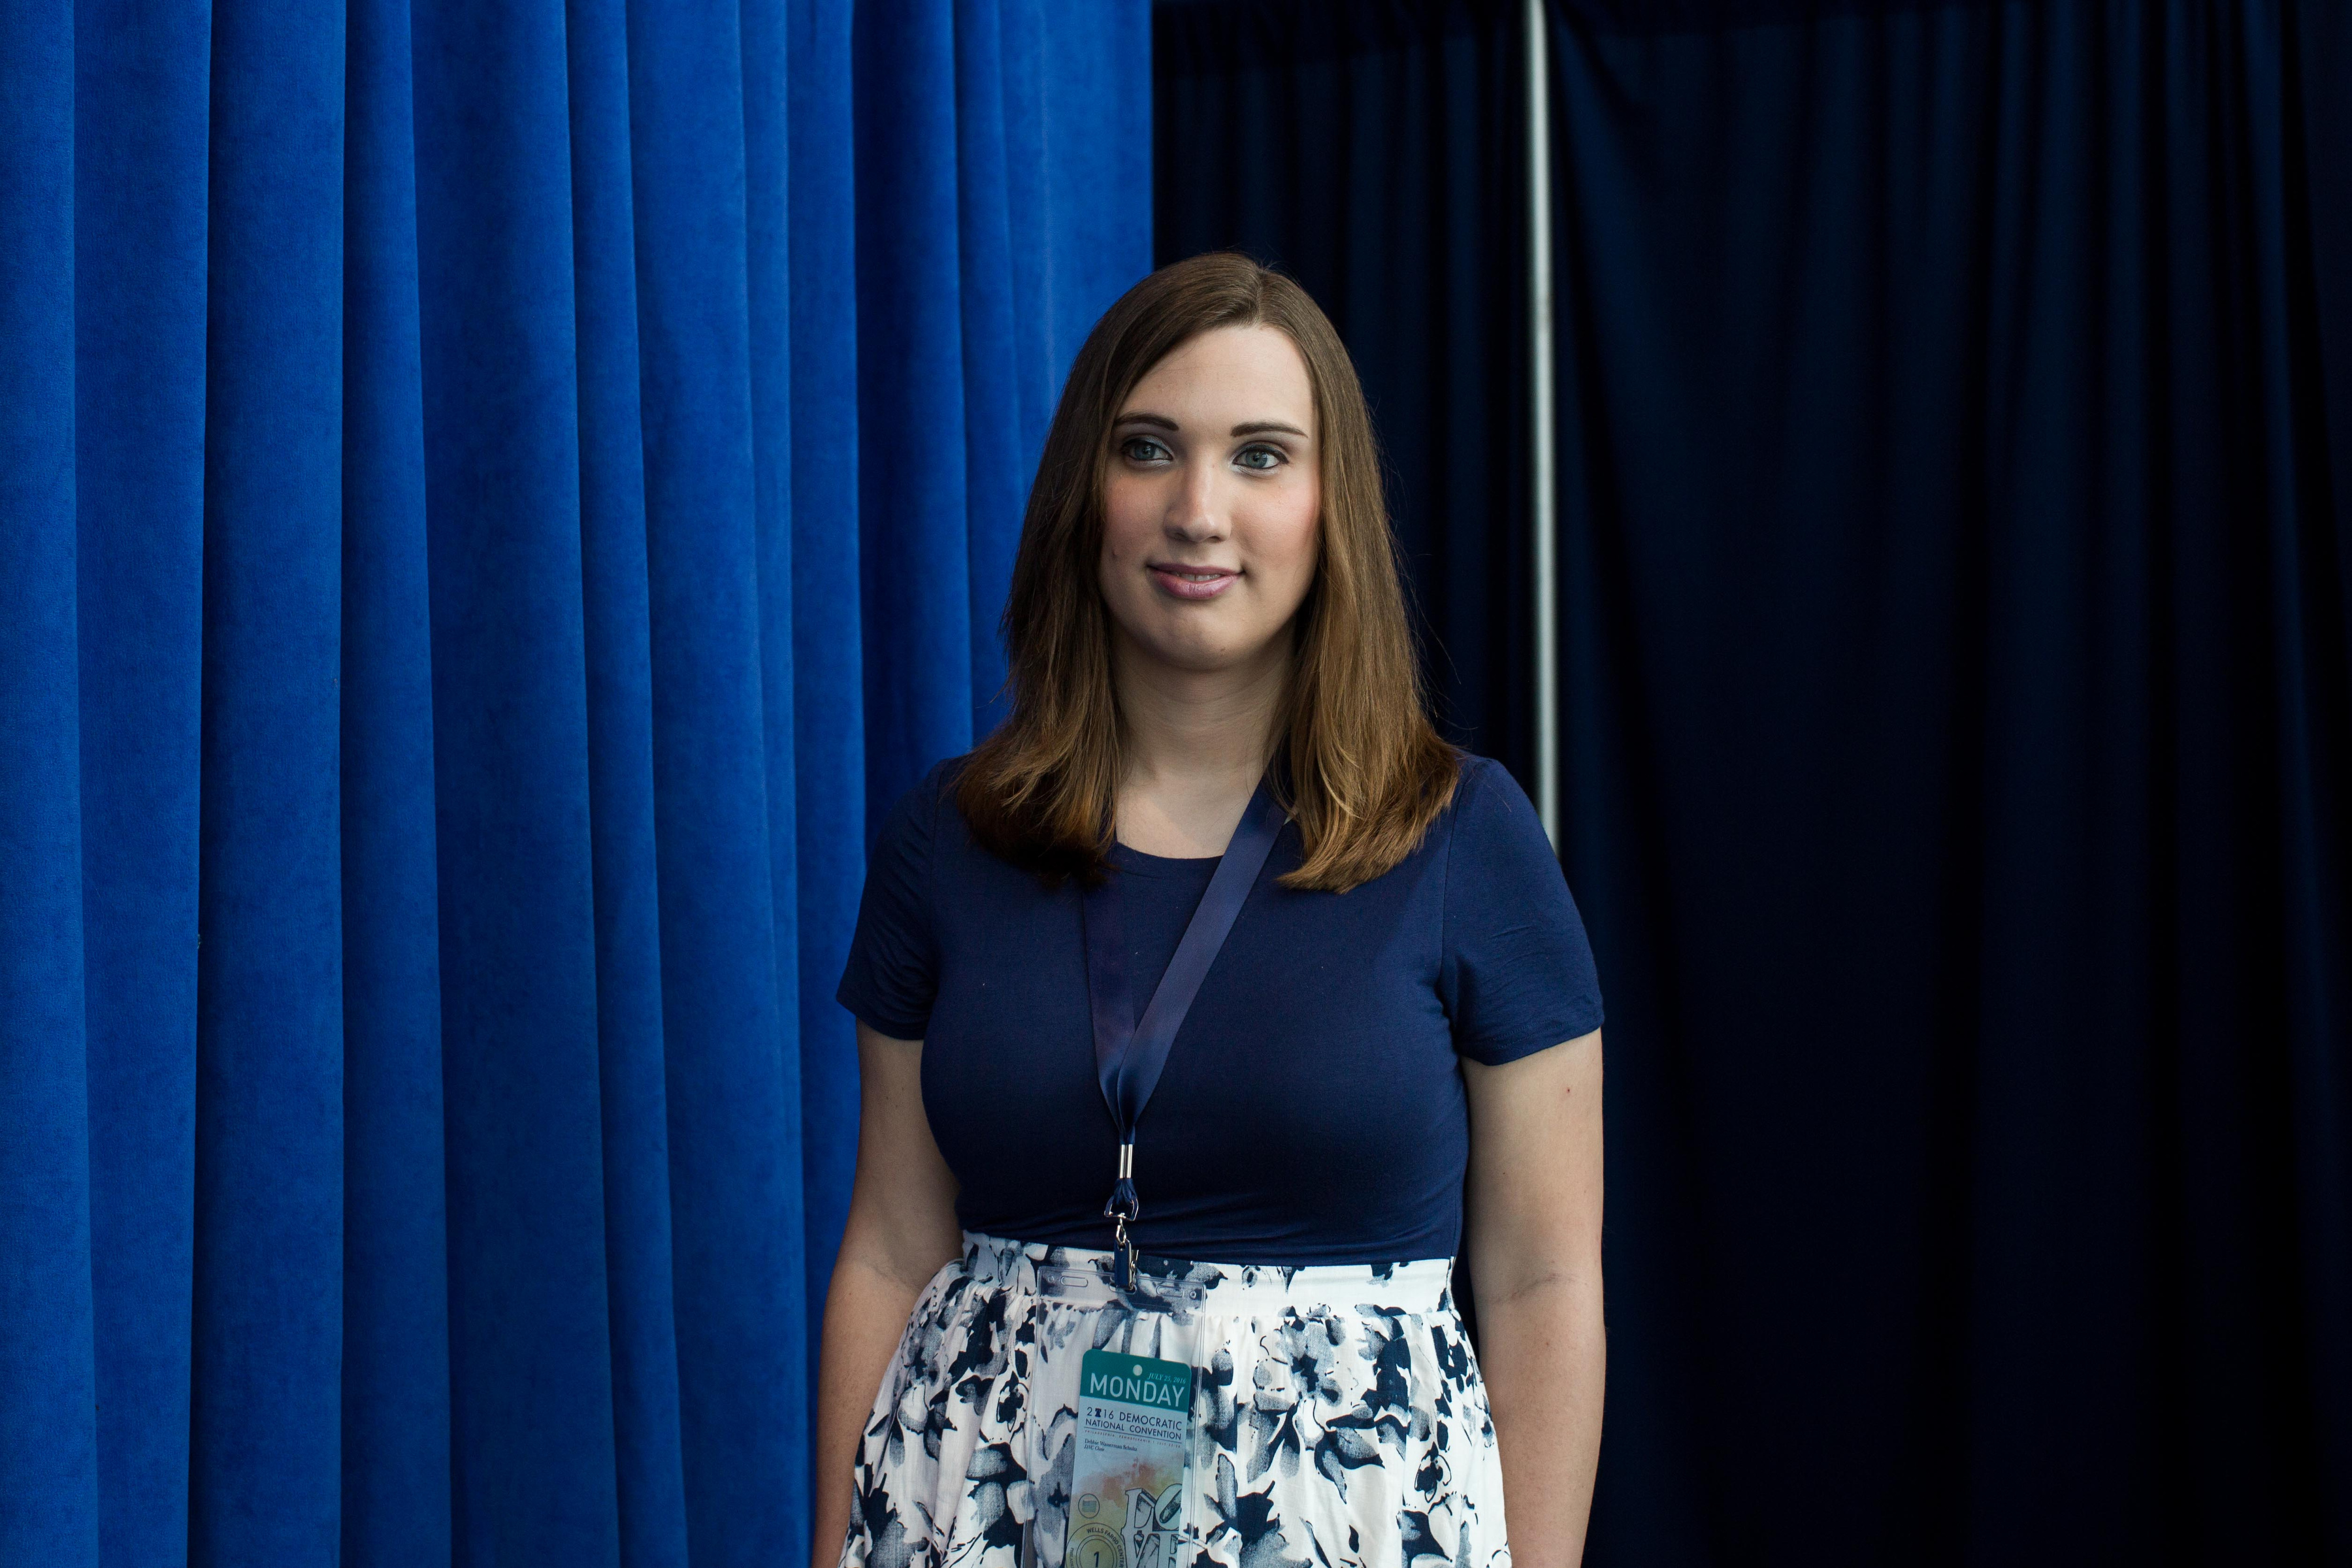 Sarah McBride posed for a portrait at the Wells Fargo Center where she is attending Democratic National Convention on July 25, 2016 in Philadelphia.                                                               (Natalie Keyssar for TIME)